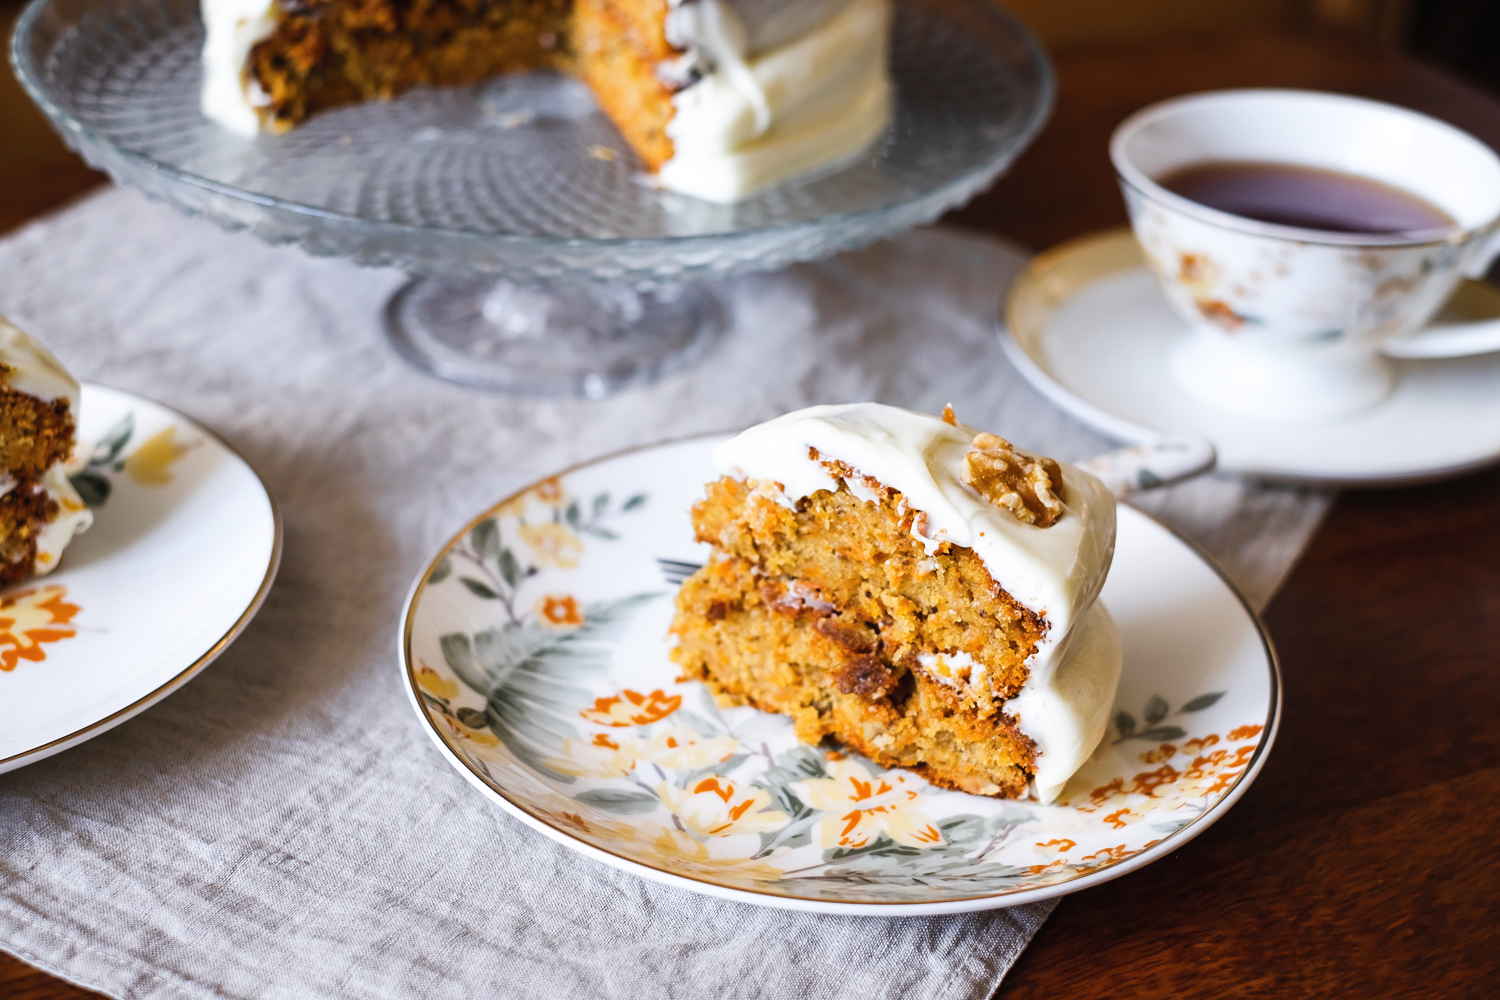 Carrot-Cake-Laura-Ashley-Florentine-5